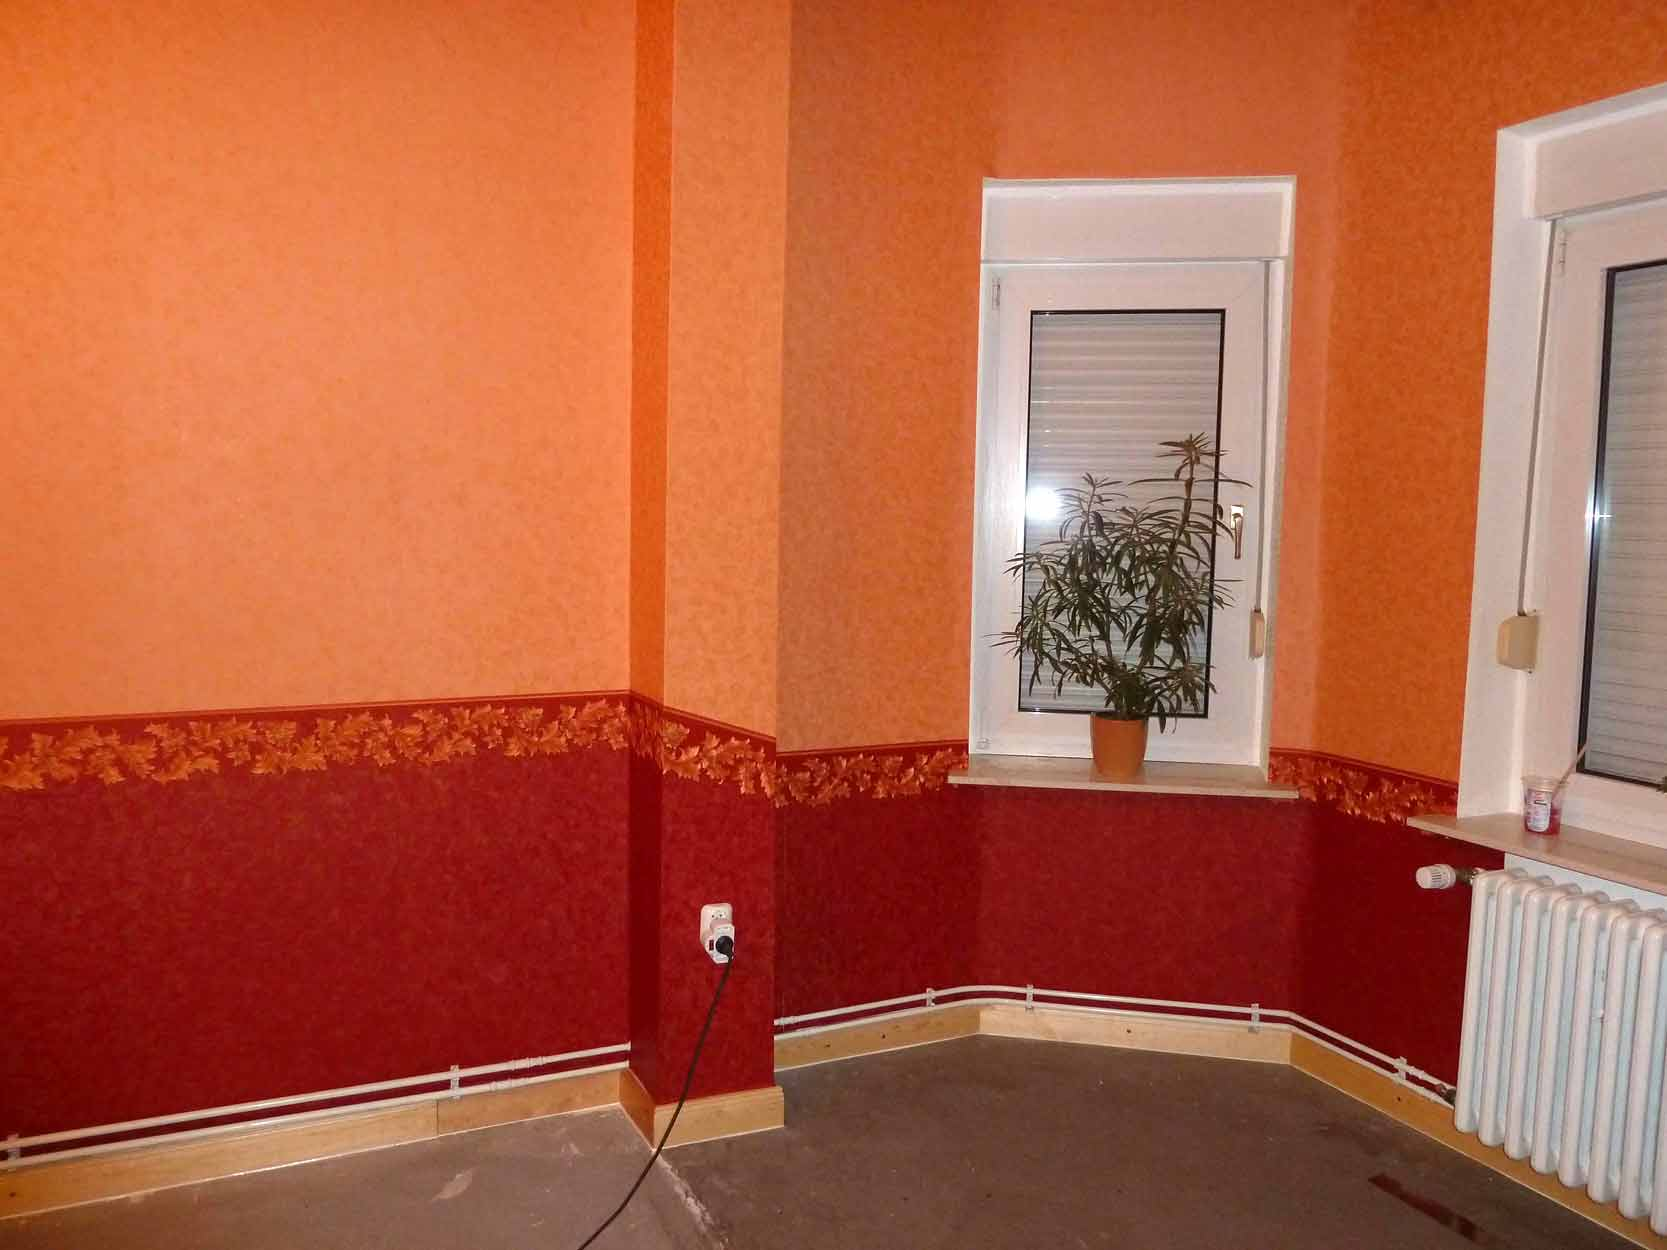 20170113151736 Wandgestaltung Schlafzimmer Orange ~ Easinext.com